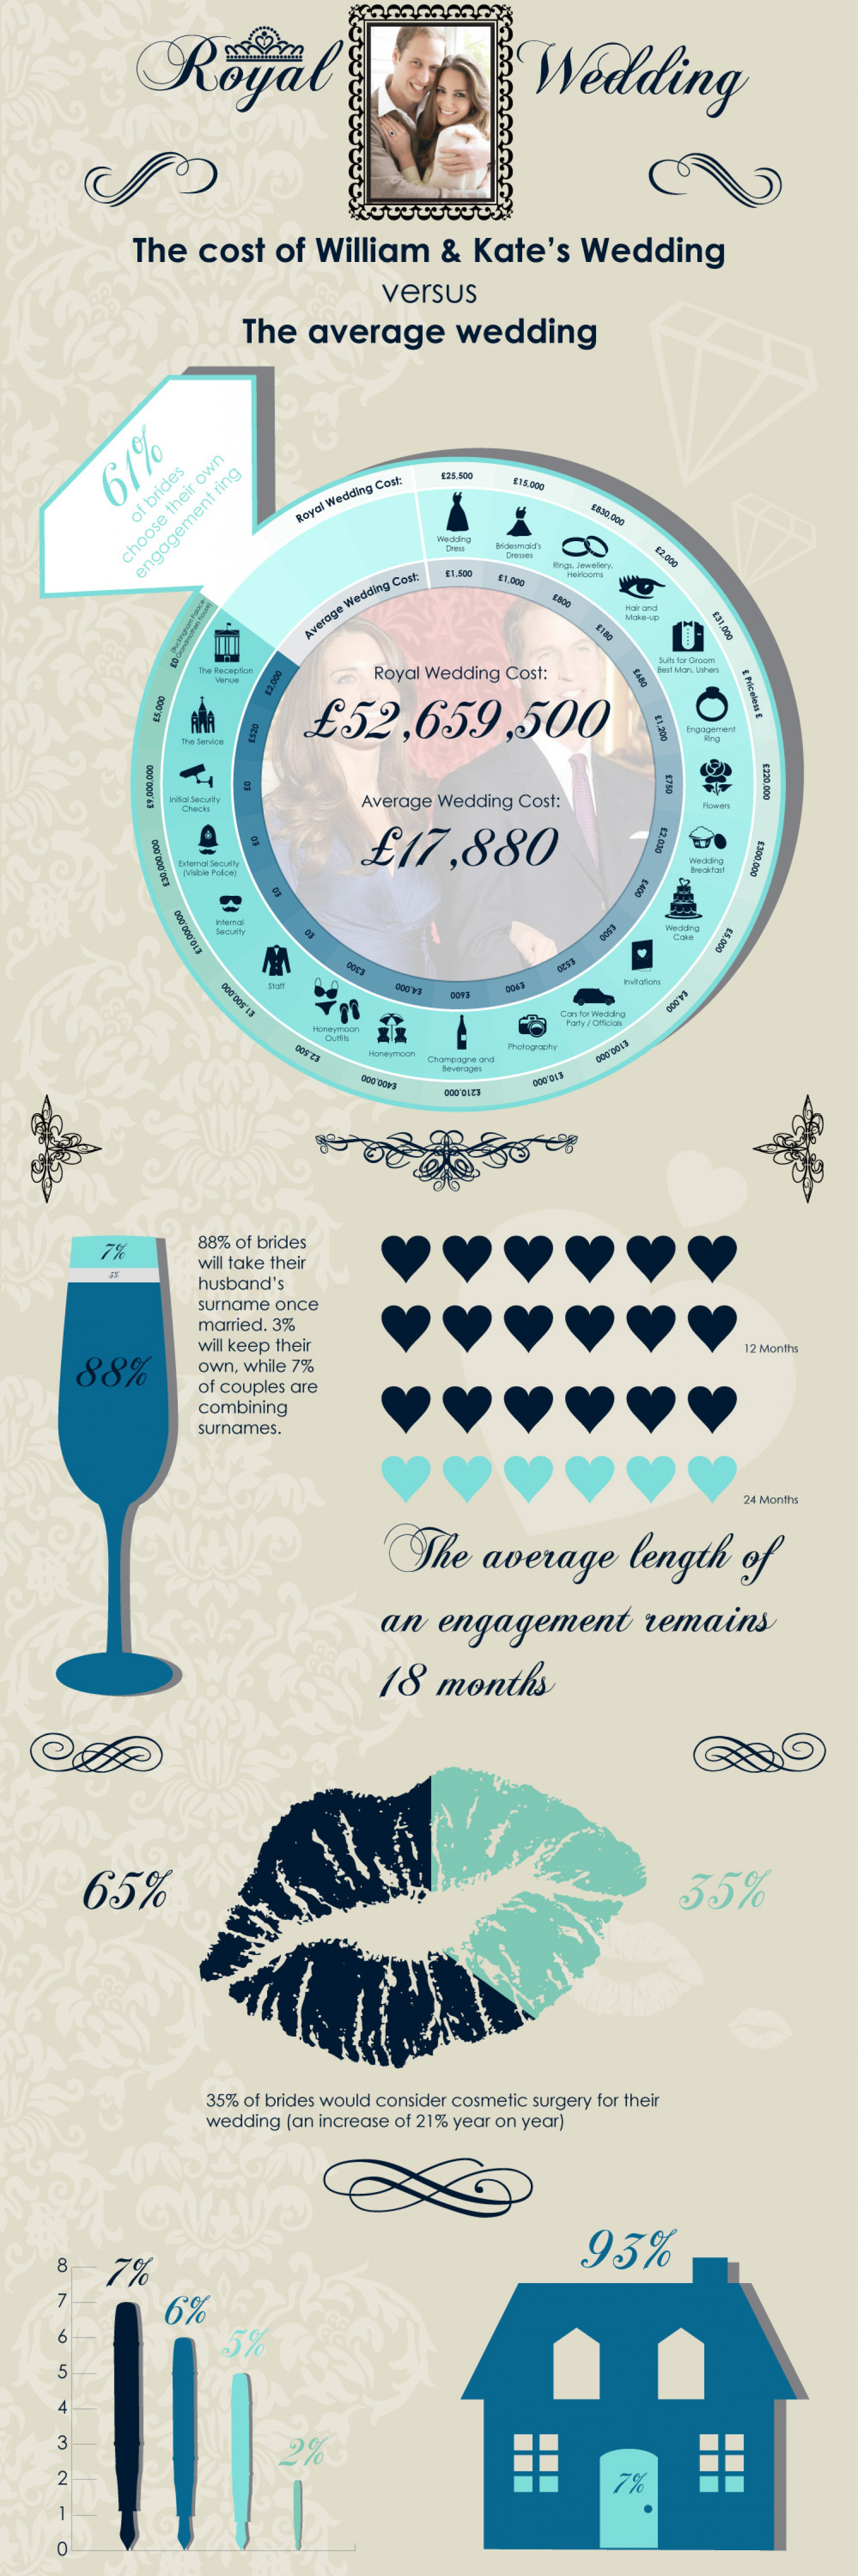 The Cost Of William & Kate's Wedding Infographic